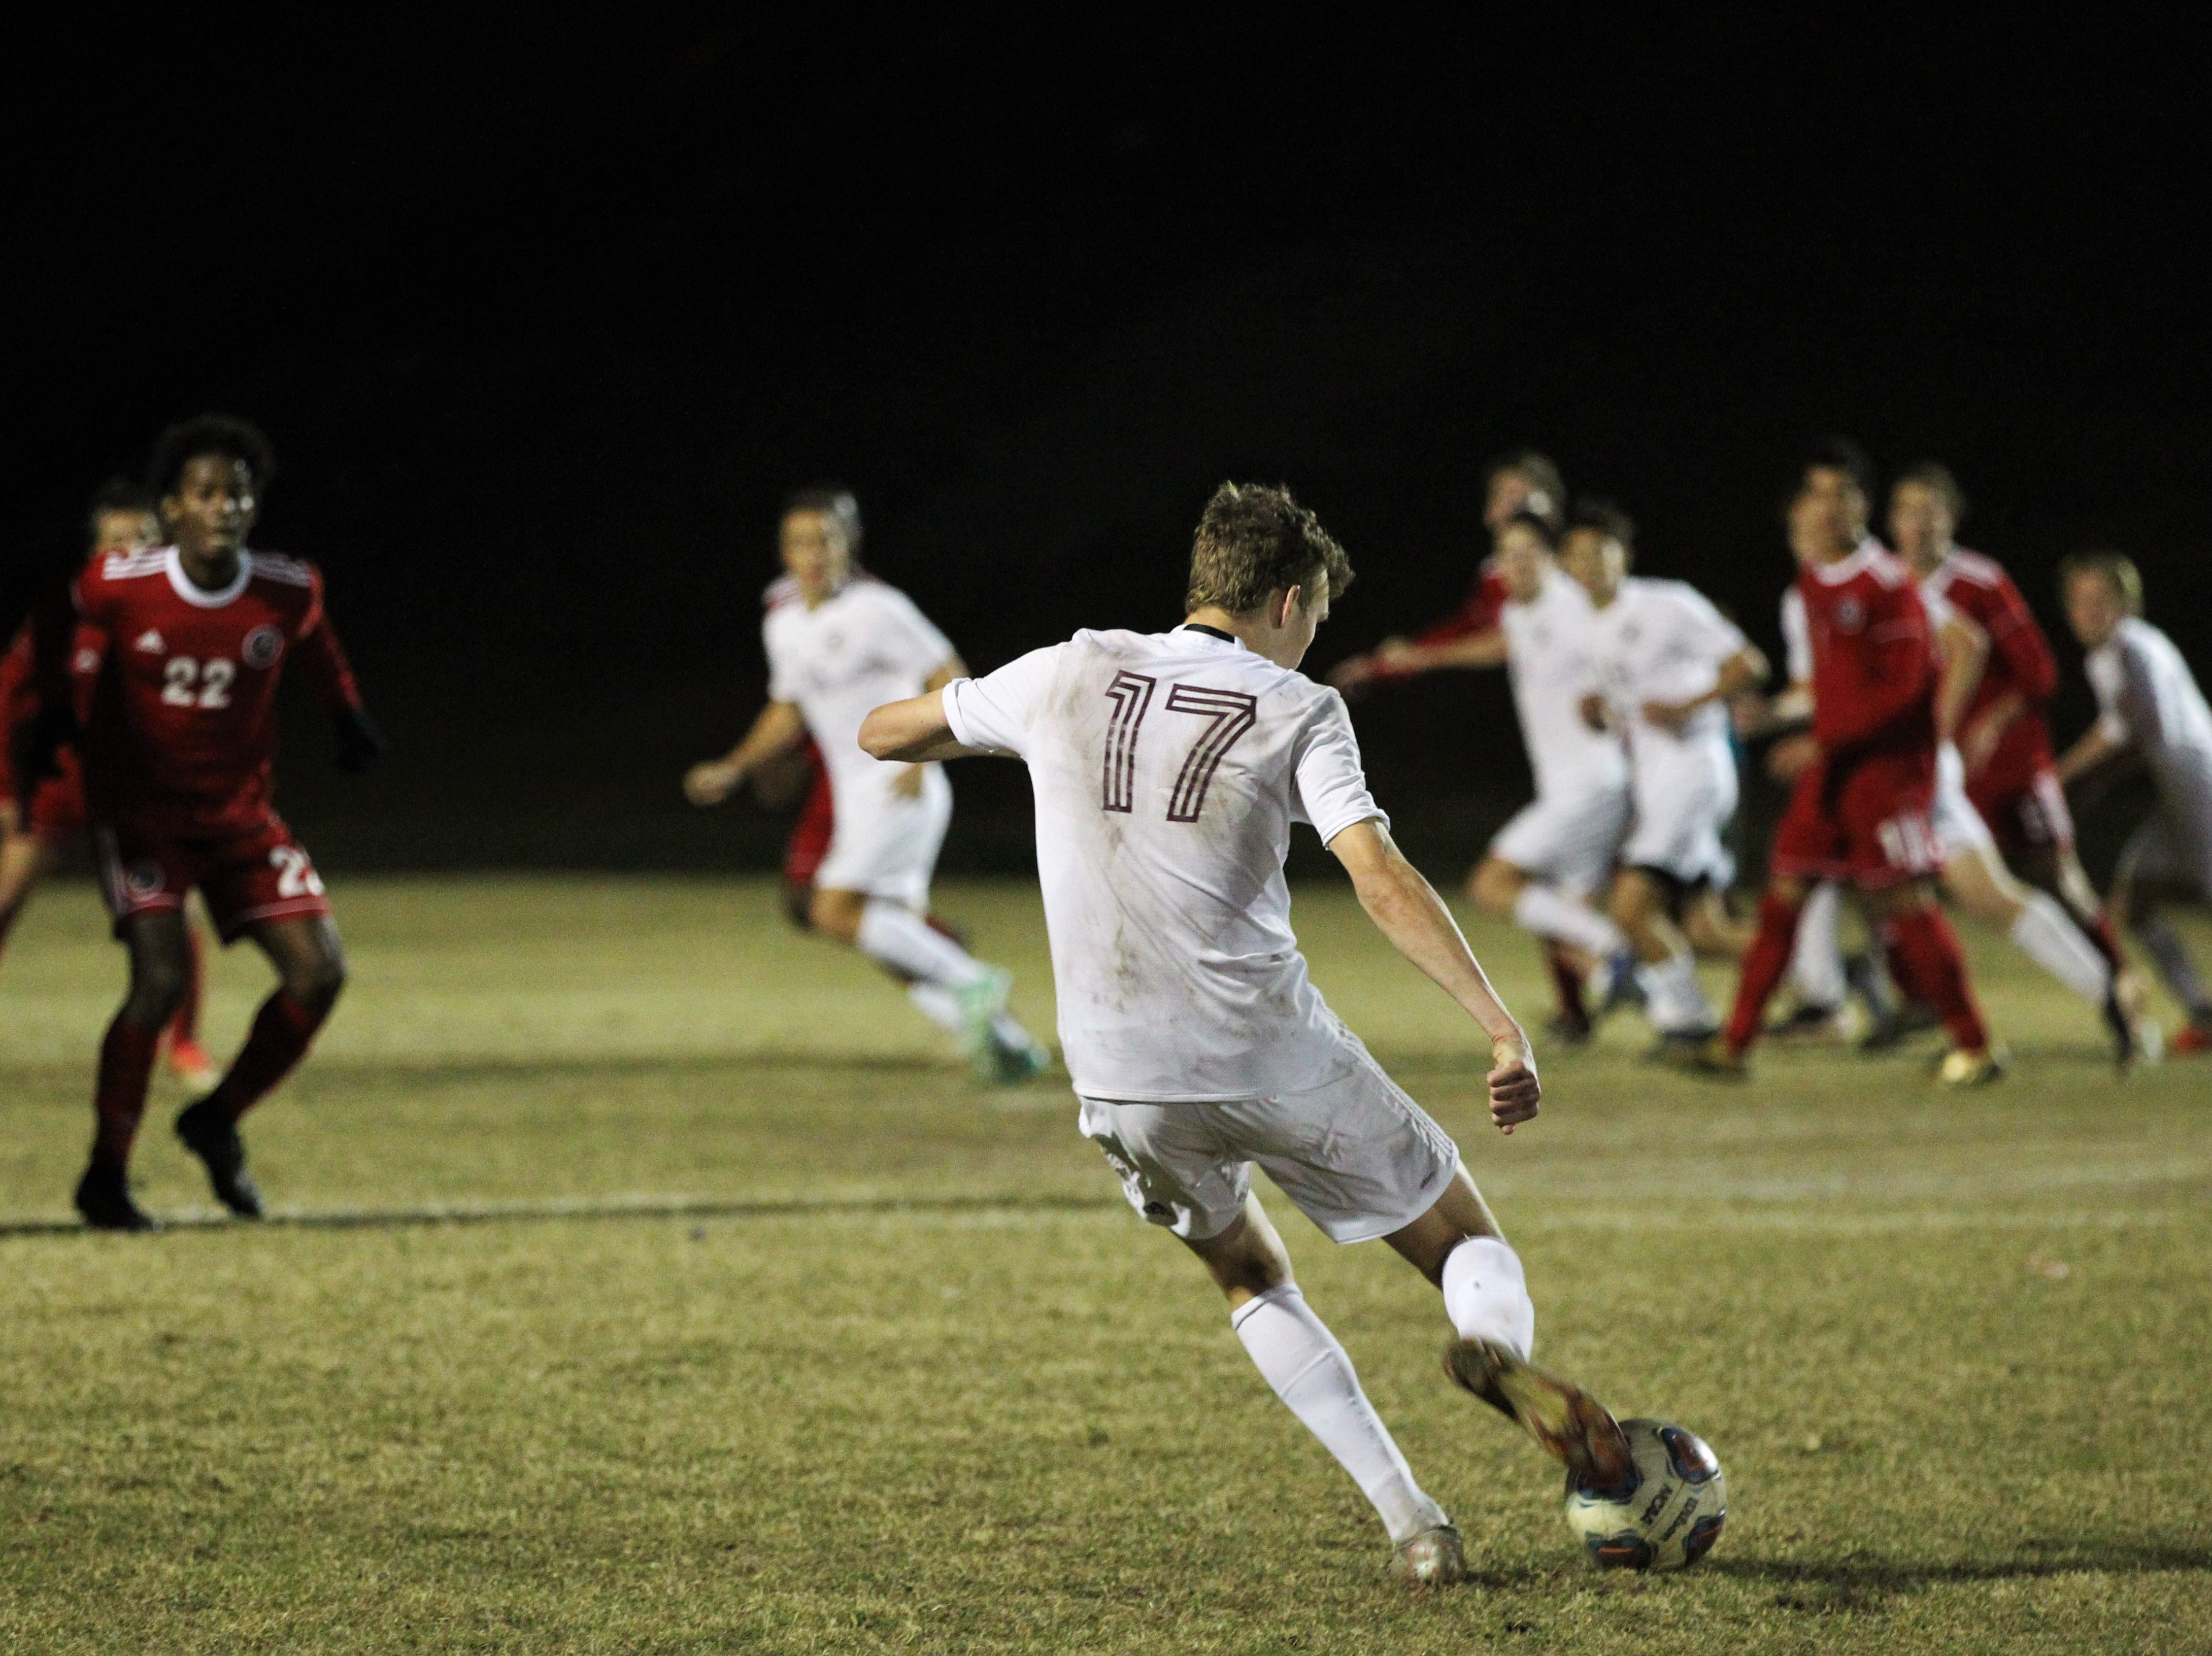 Niceville's Logan Harrelson takes a last-second free kick as Leon's boys soccer team beat Niceville 1-0 in a Region 1-4A semifinal on Feb. 9, 2019.